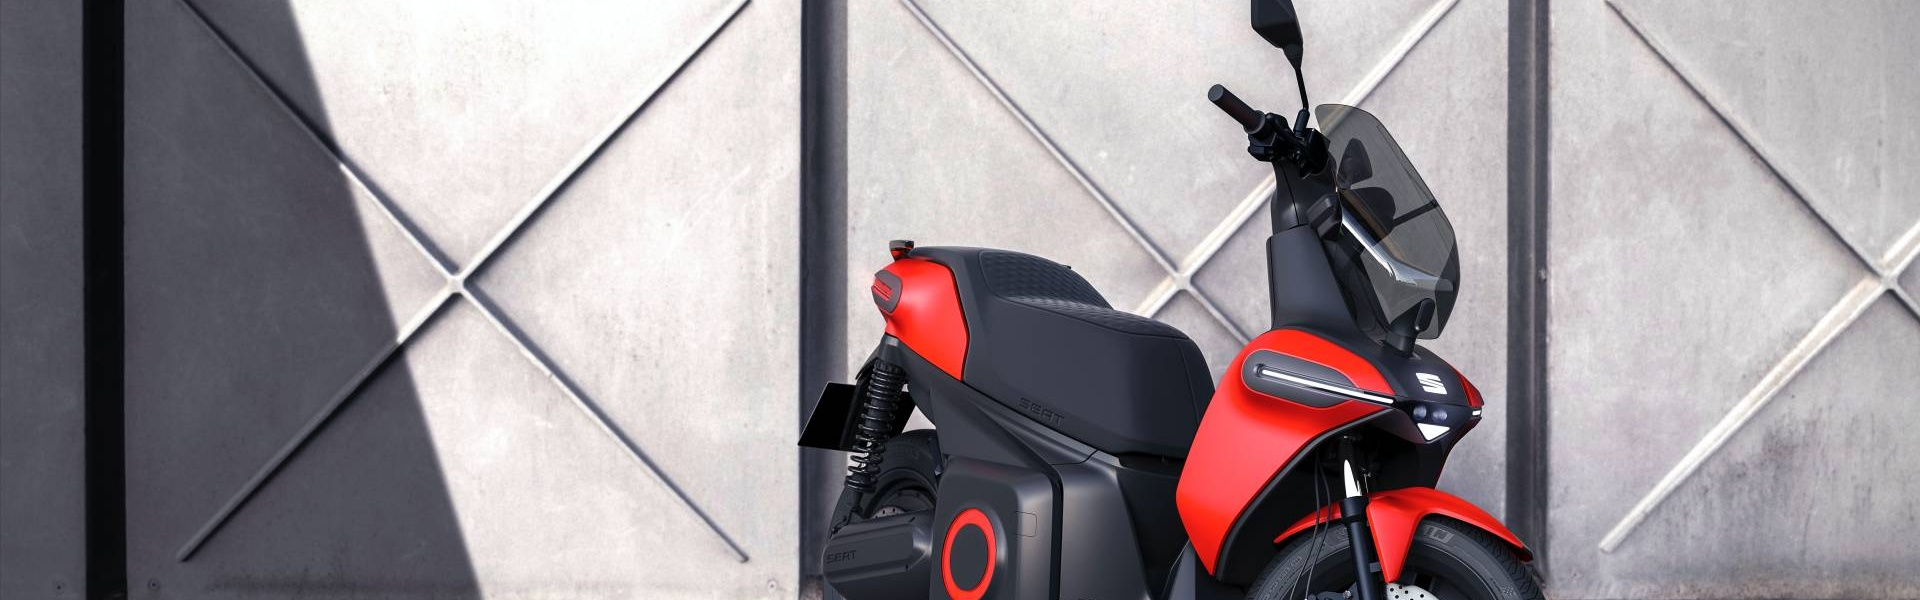 SEAT-e-Scooter-Concept-2.jpg